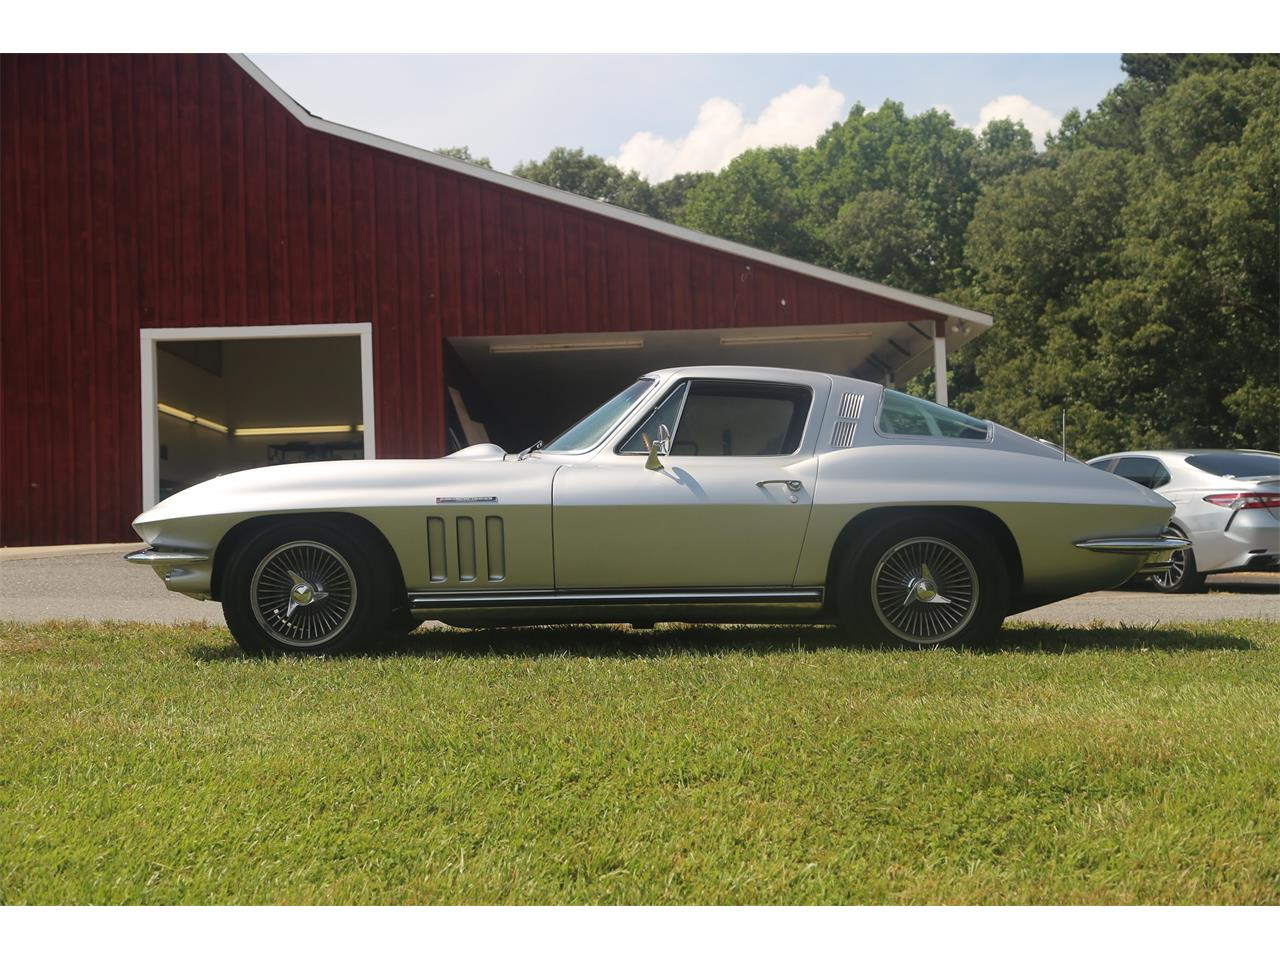 Large Picture of 1965 Chevrolet Corvette Auction Vehicle Offered by Bullseye Auctions - QCTR